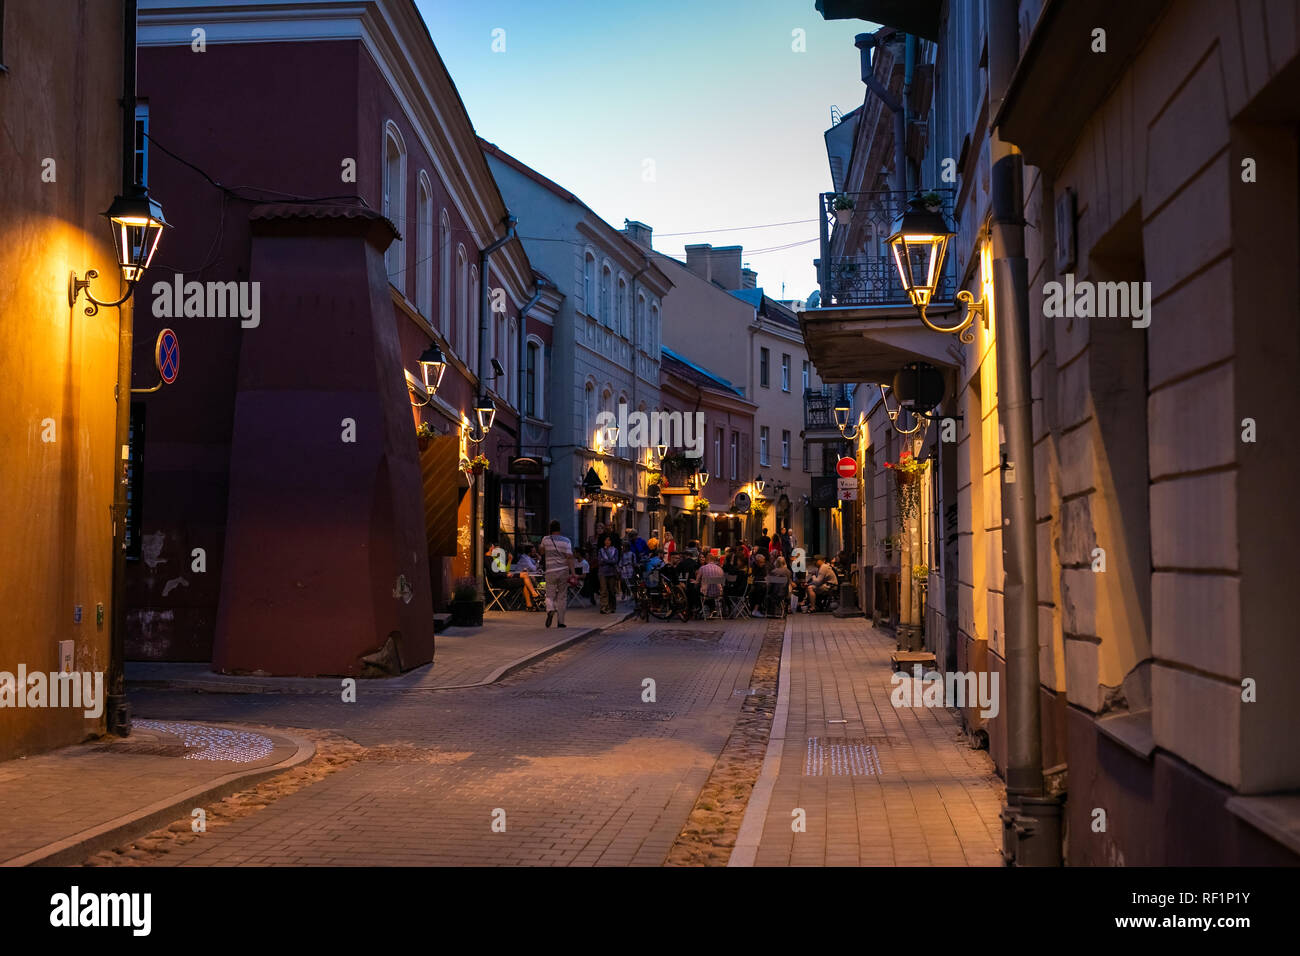 Street in Old Town at night of Vilnius, Lithuania, Baltic states. - Stock Image